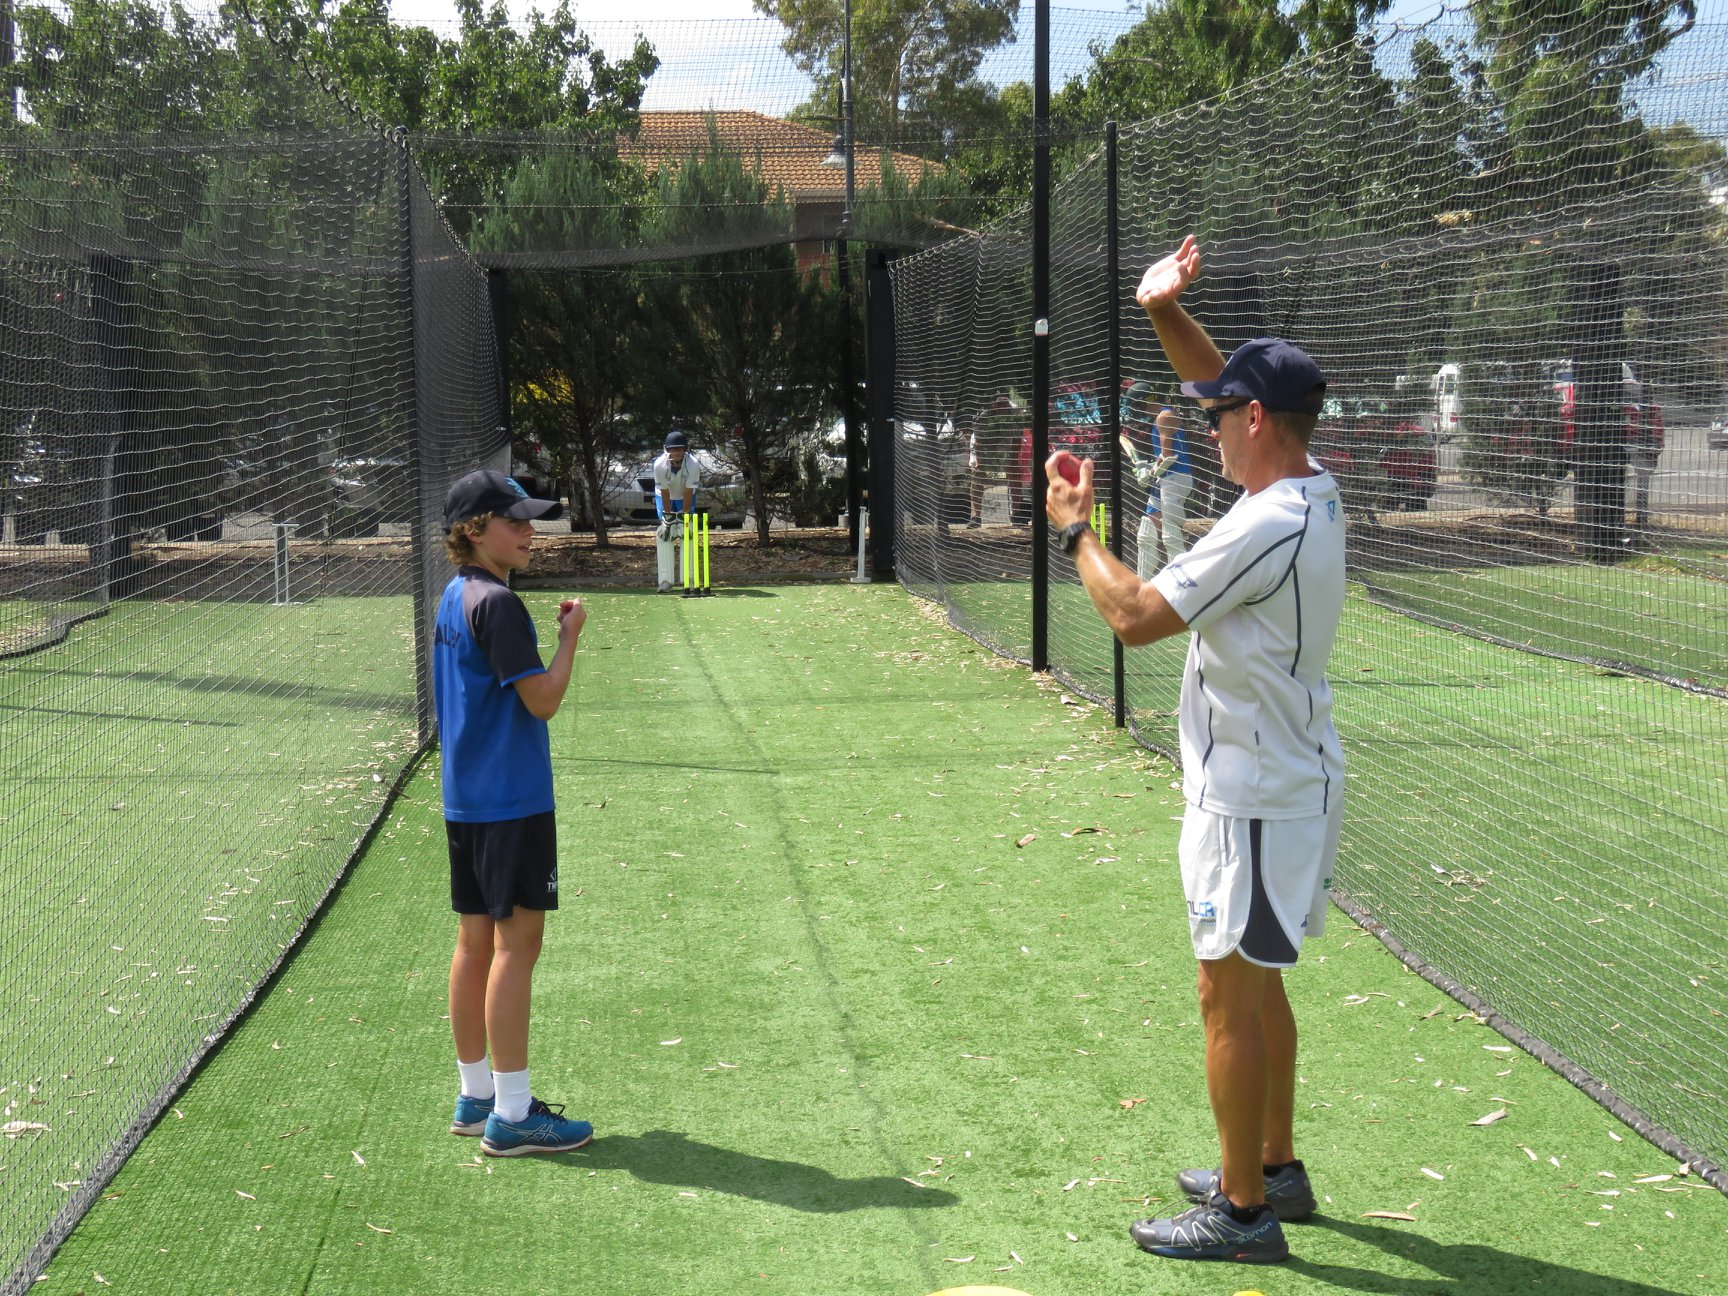 Bailey Doe from Westminster and Brad Young working one-on-one during the 2019 DLCA Schools Program